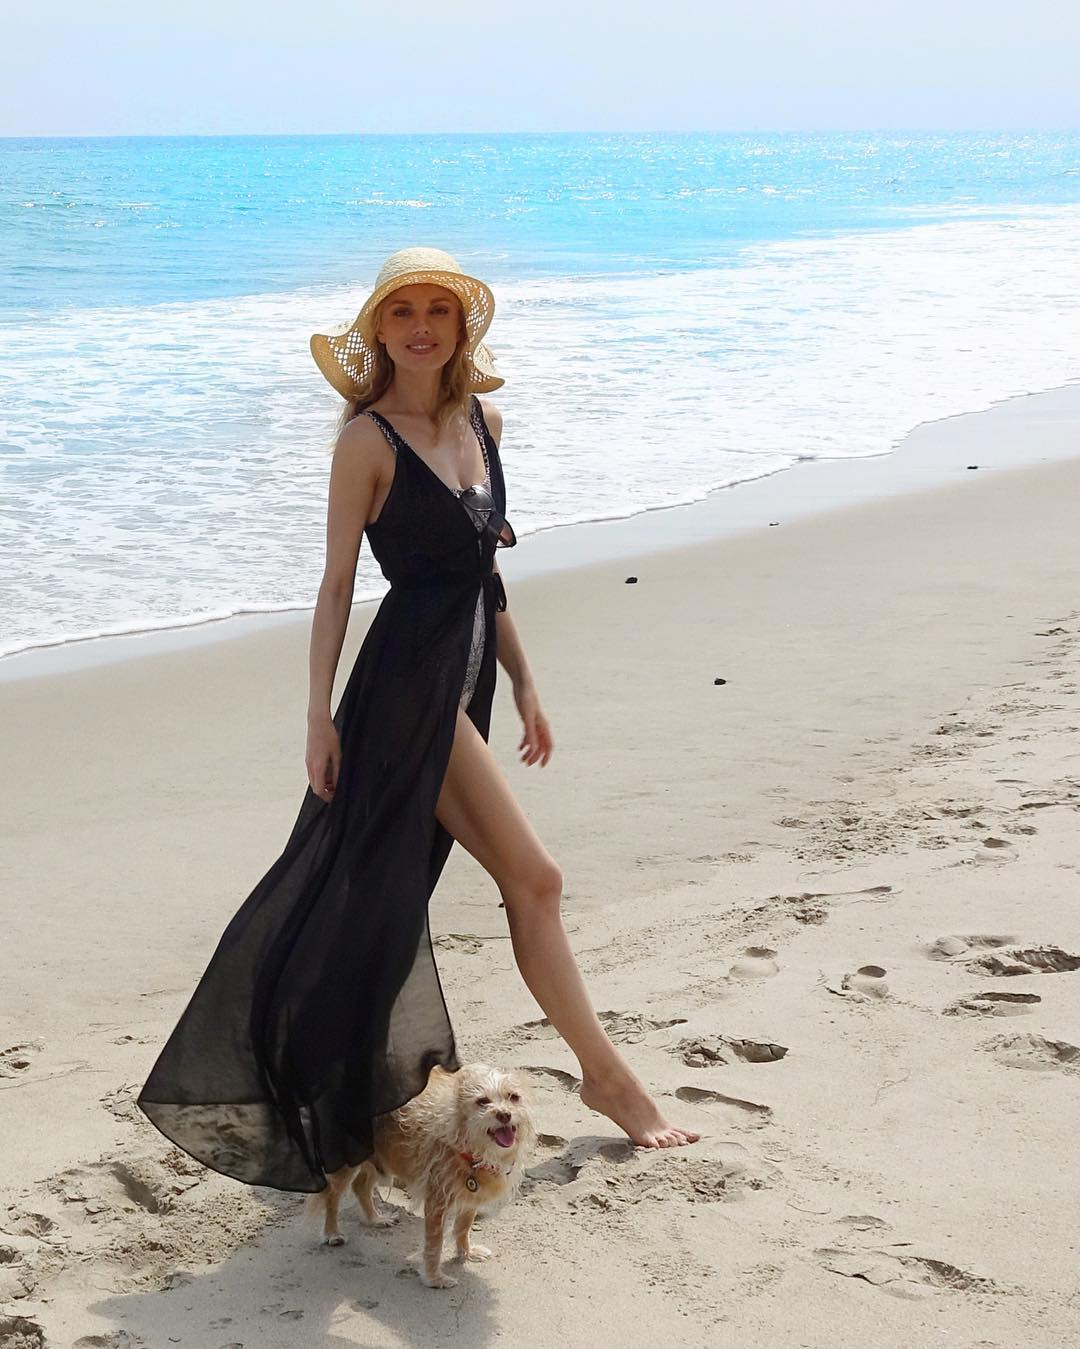 Bar Paly Hot Pictures, Bikini And Fashion Style (49 Photos)